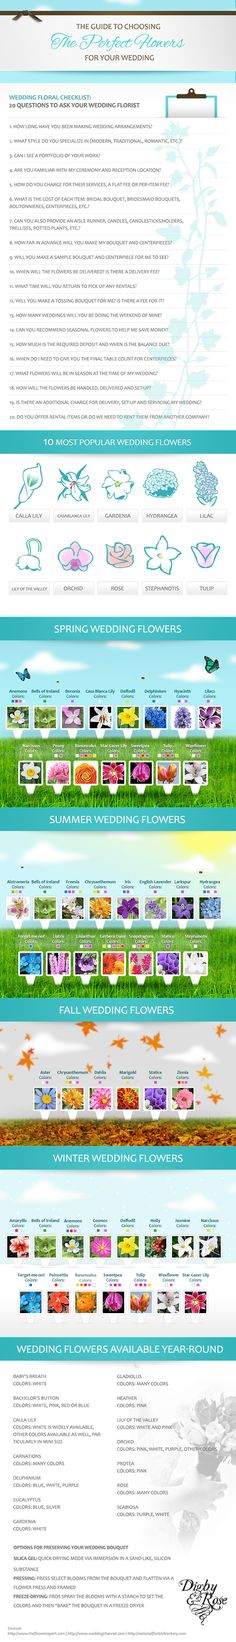 [Infographic] Complete Guide To Choosing The Best Wedding Flowers | LinchpinSEO Chicago